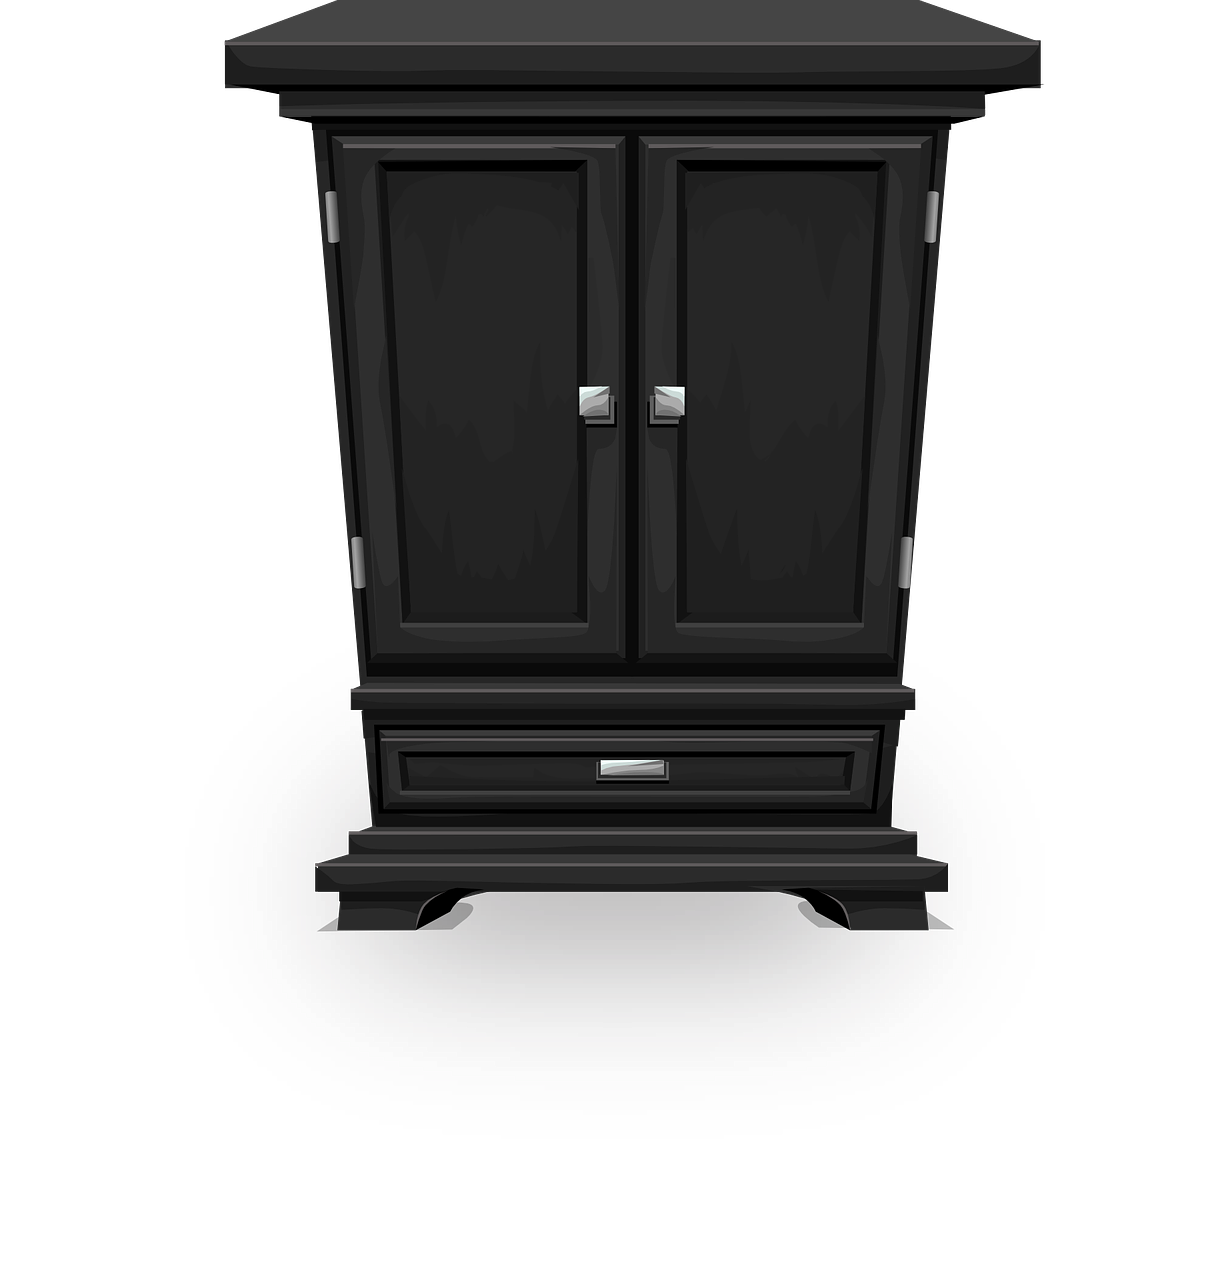 Furniture clipart cupboard. Free image on pixabay